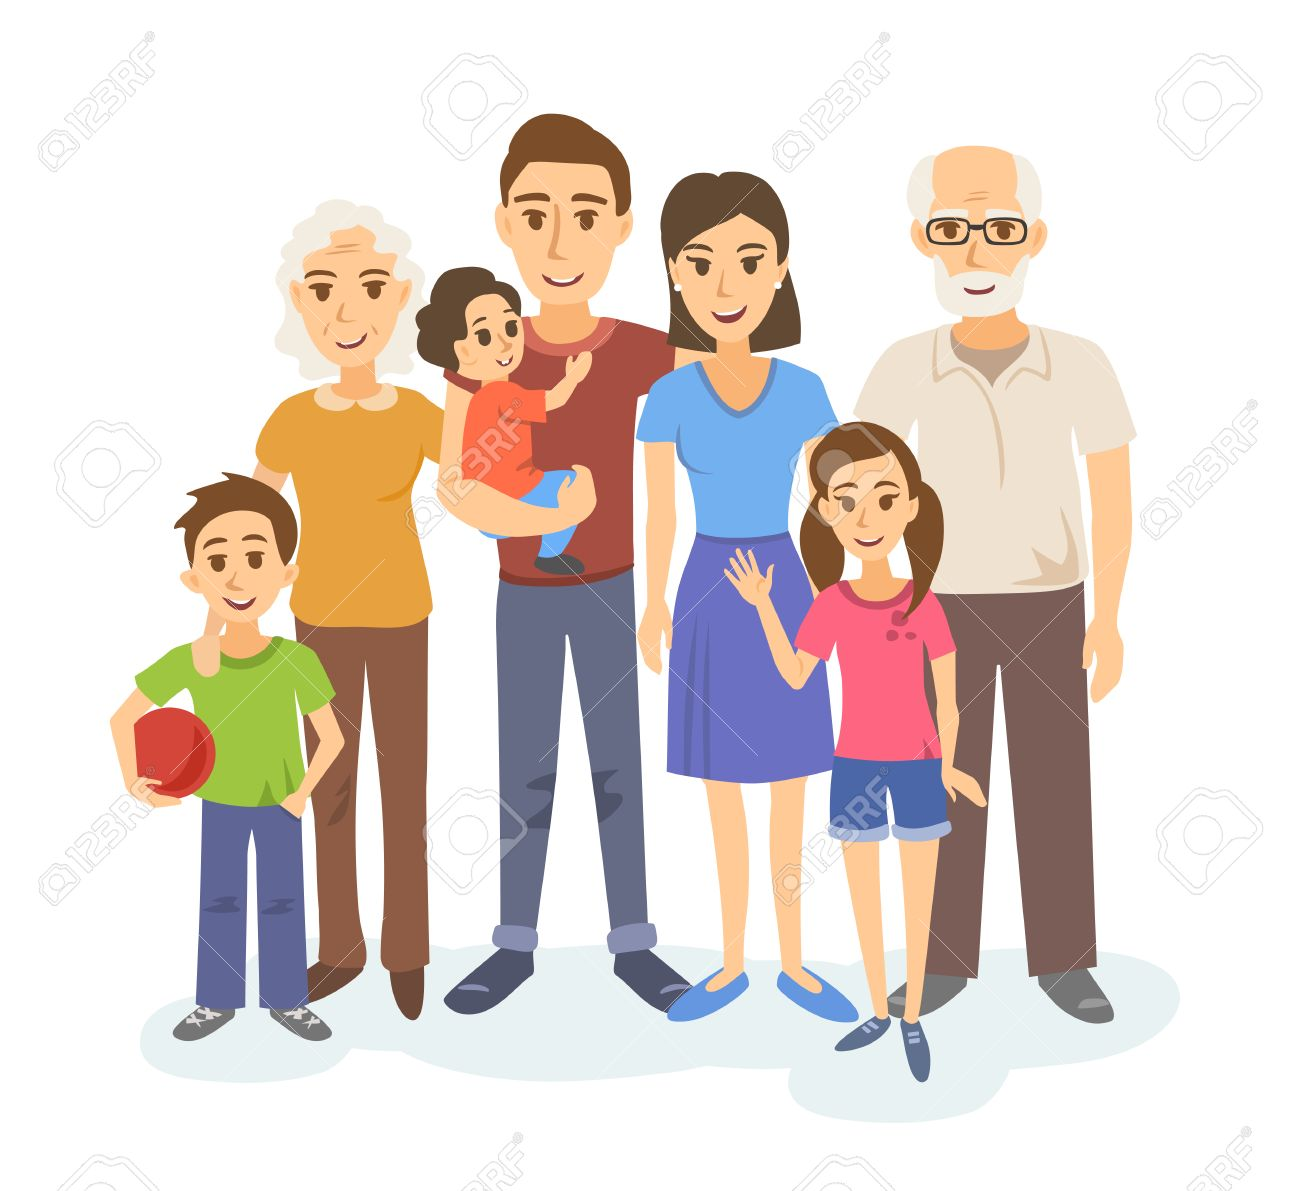 Cartoon Portrait Of Big Family Mother Father Grandparents Royalty Free Cliparts Vectors And Stock Illustration Image 64302270